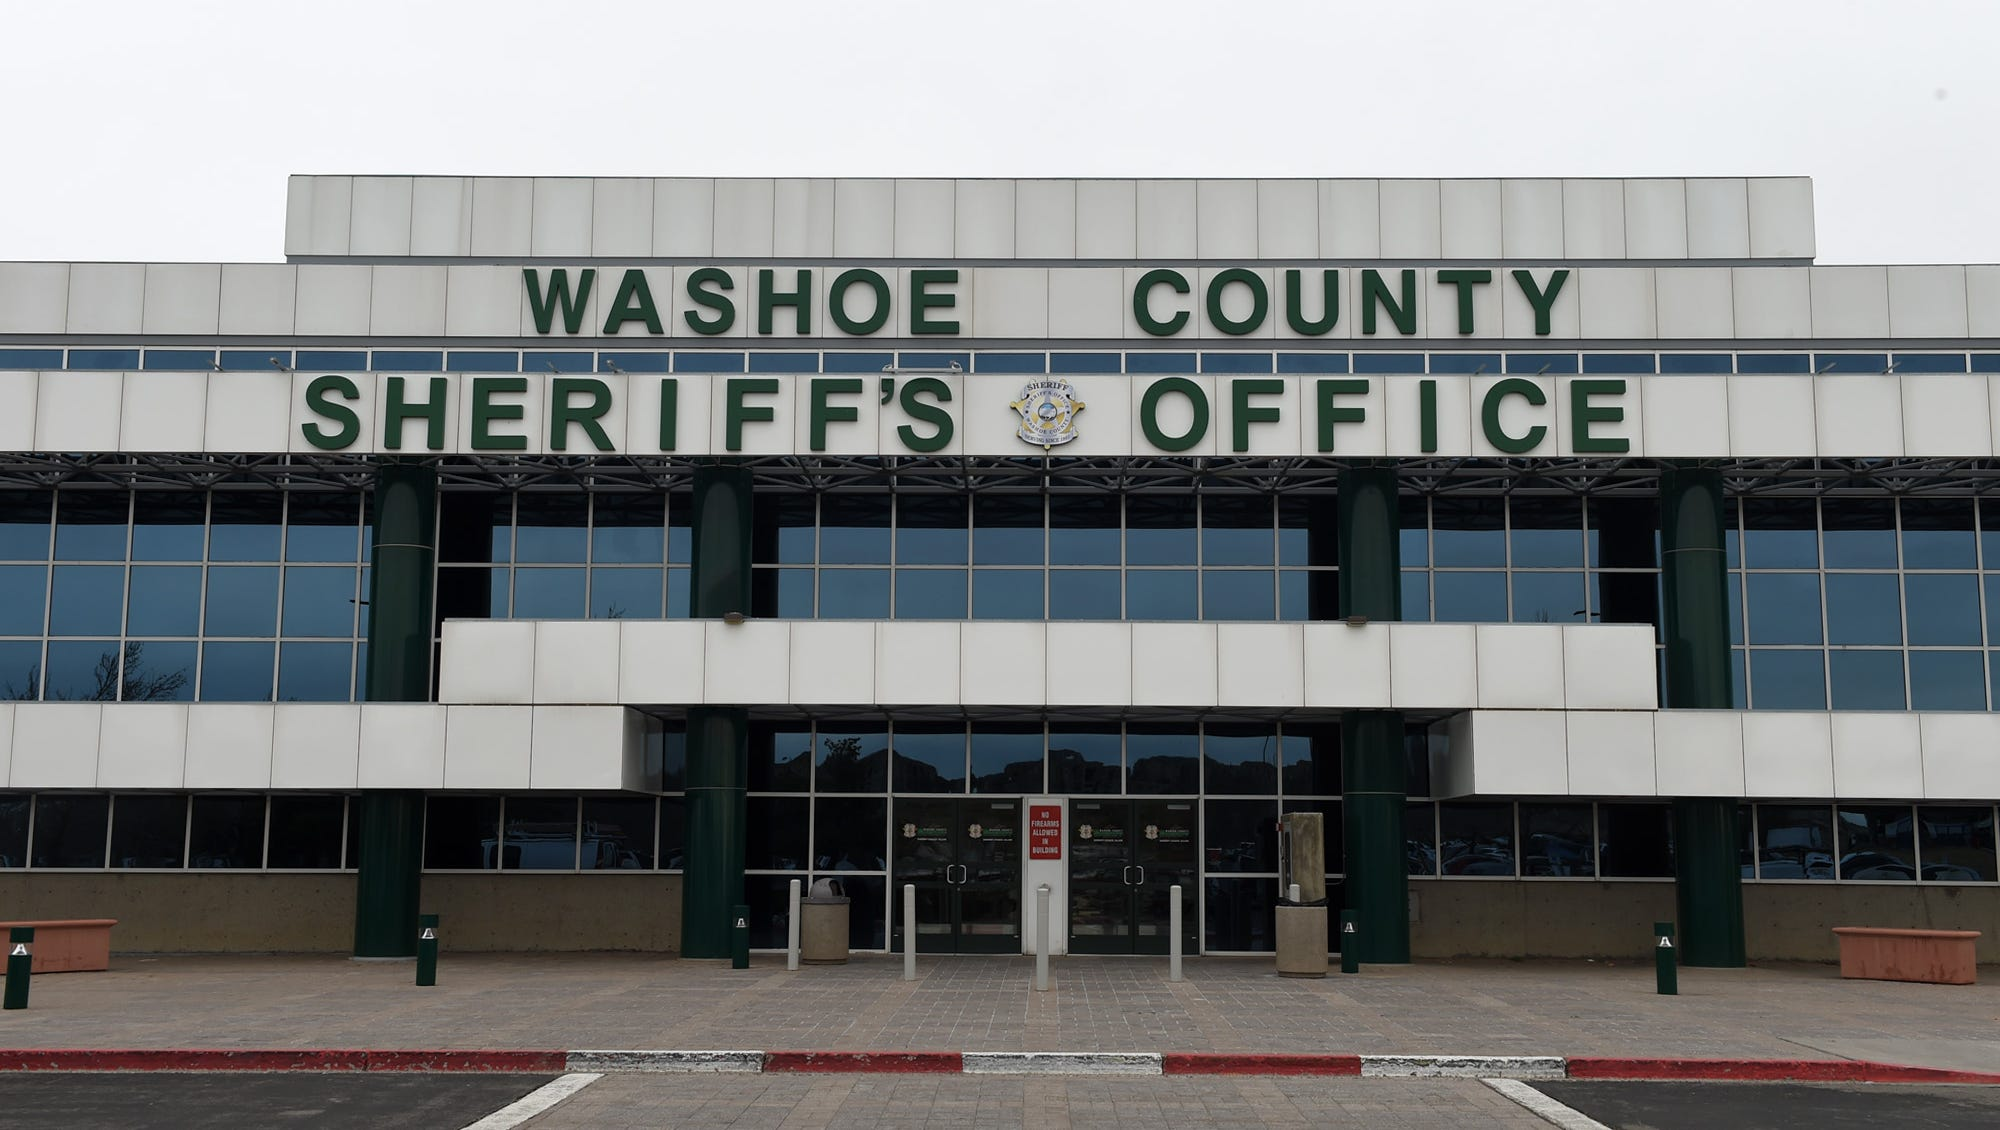 The story continues: Deputies don't want video made public